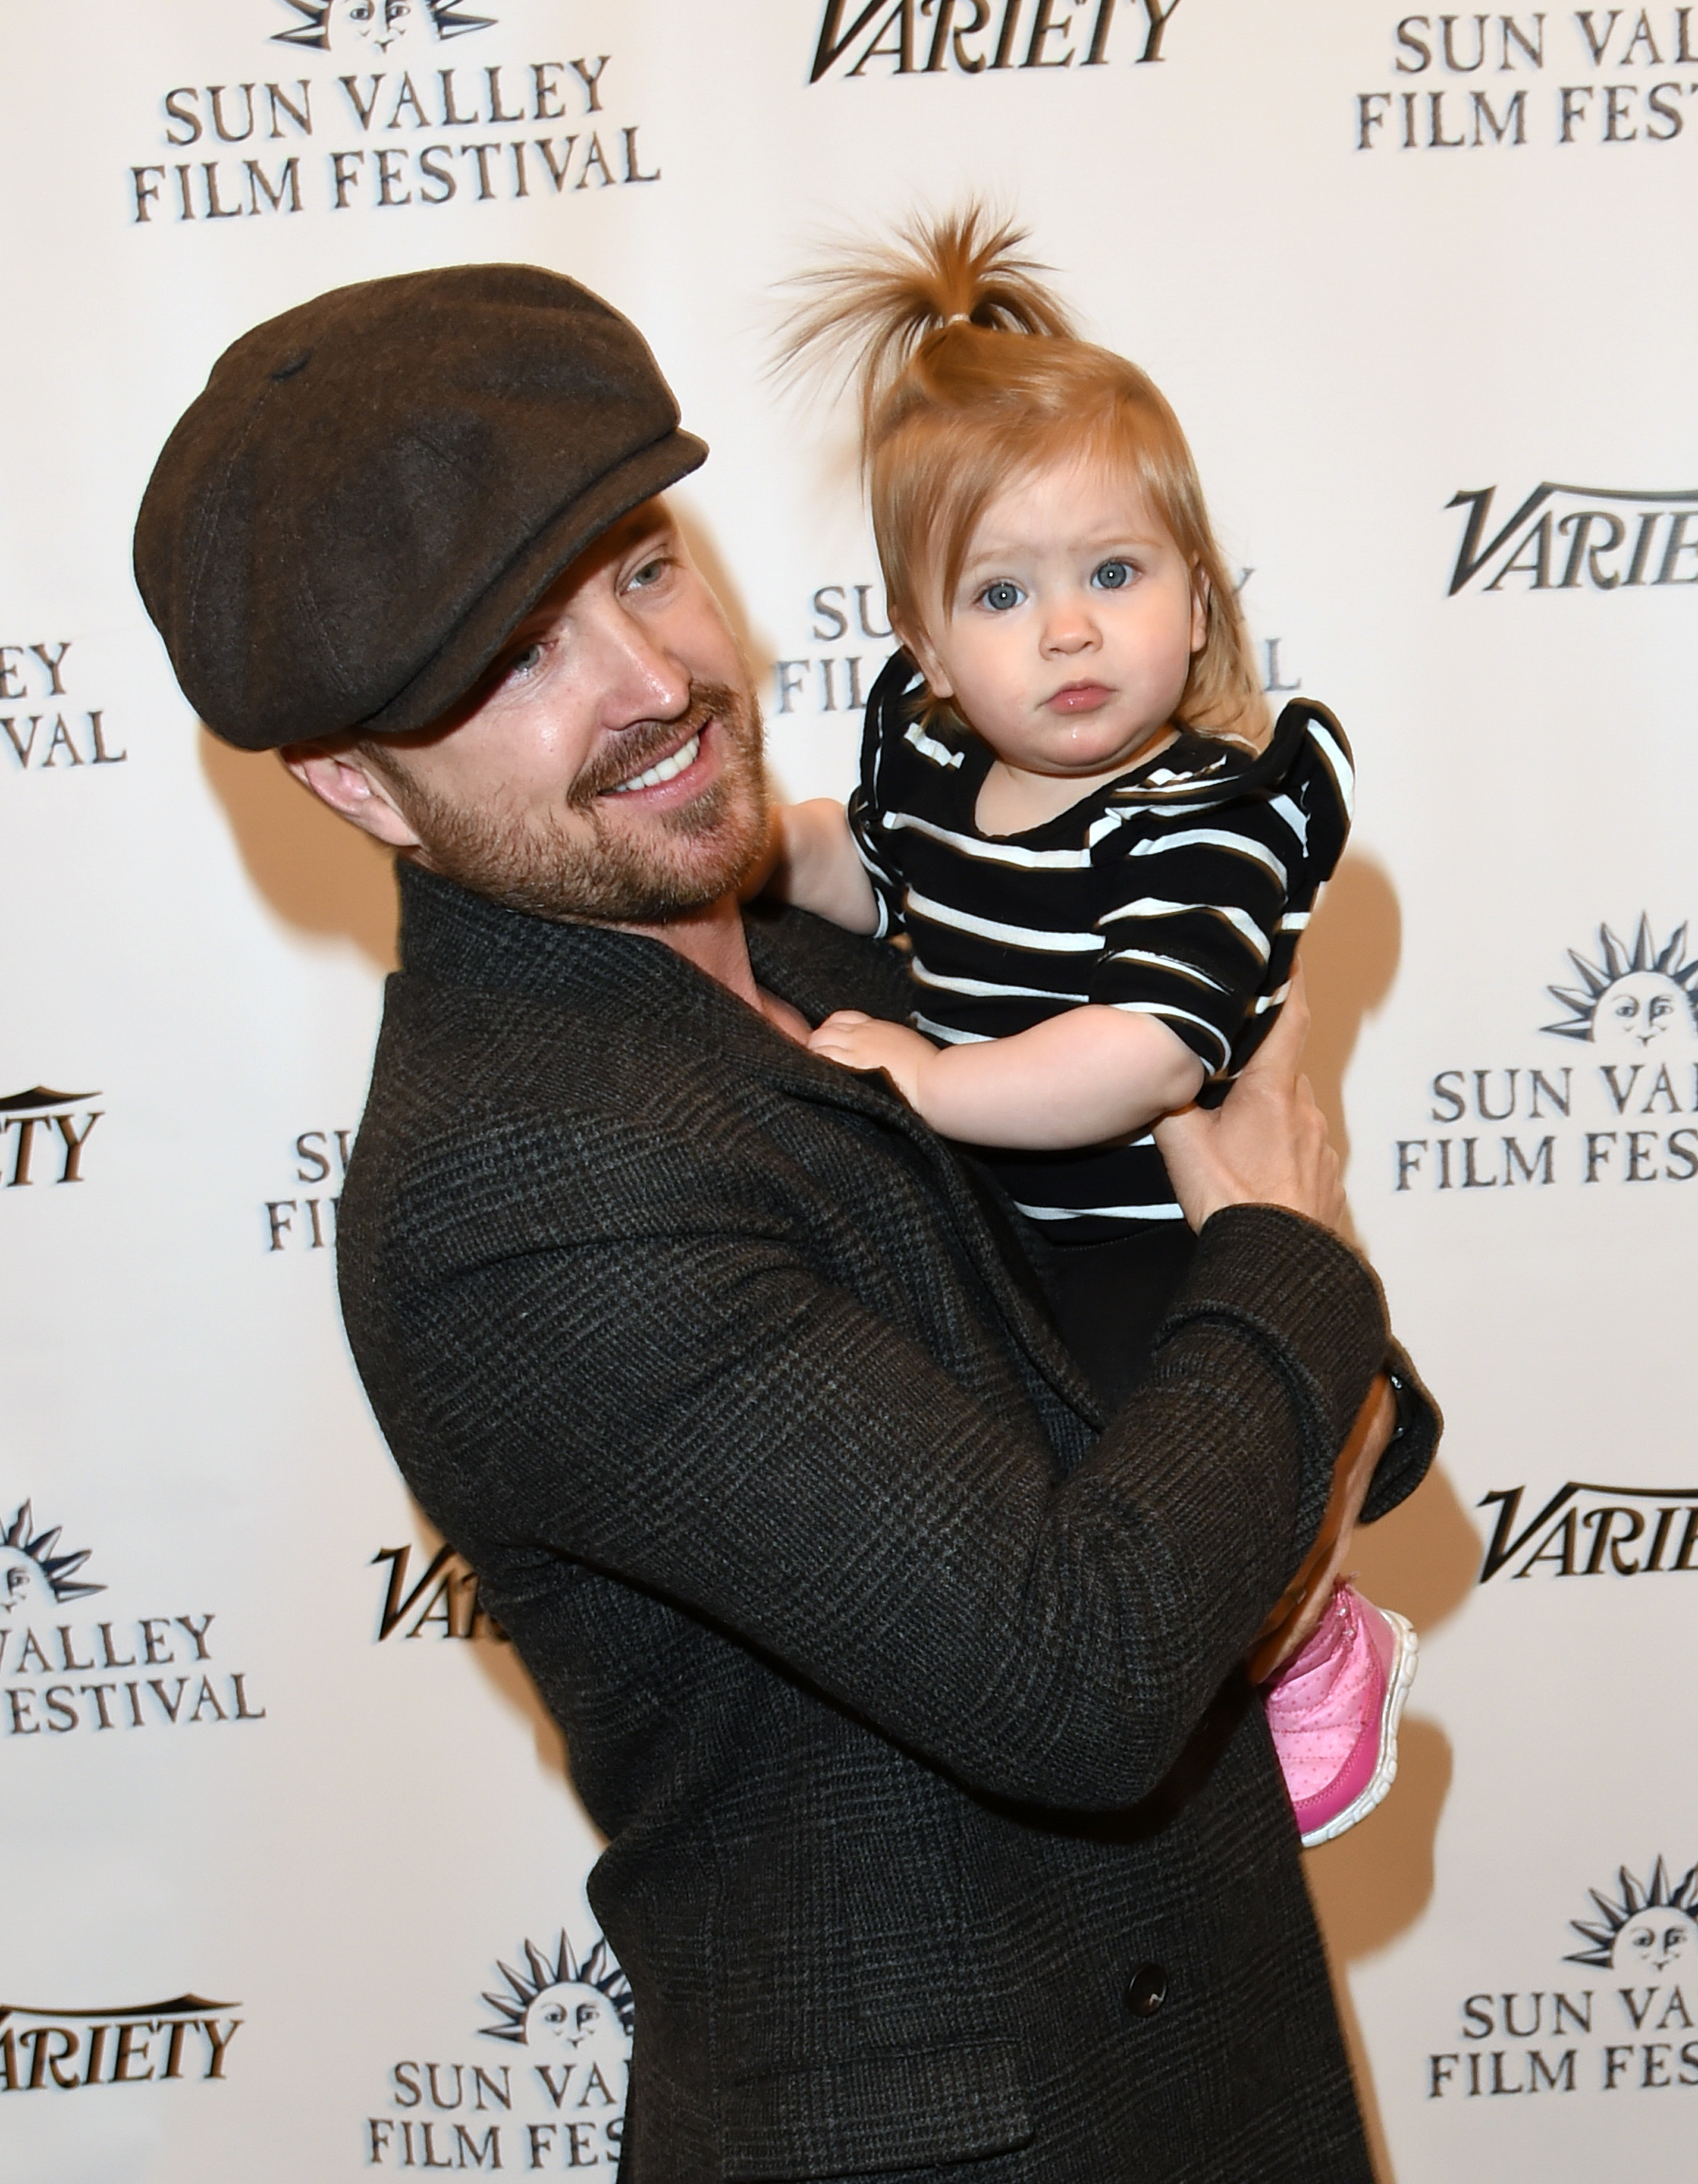 Aaron Paul posed with his adorable daughter story while attending the Sun Valley Film Festival in Sun Valley, Idaho on March 15, 2019.